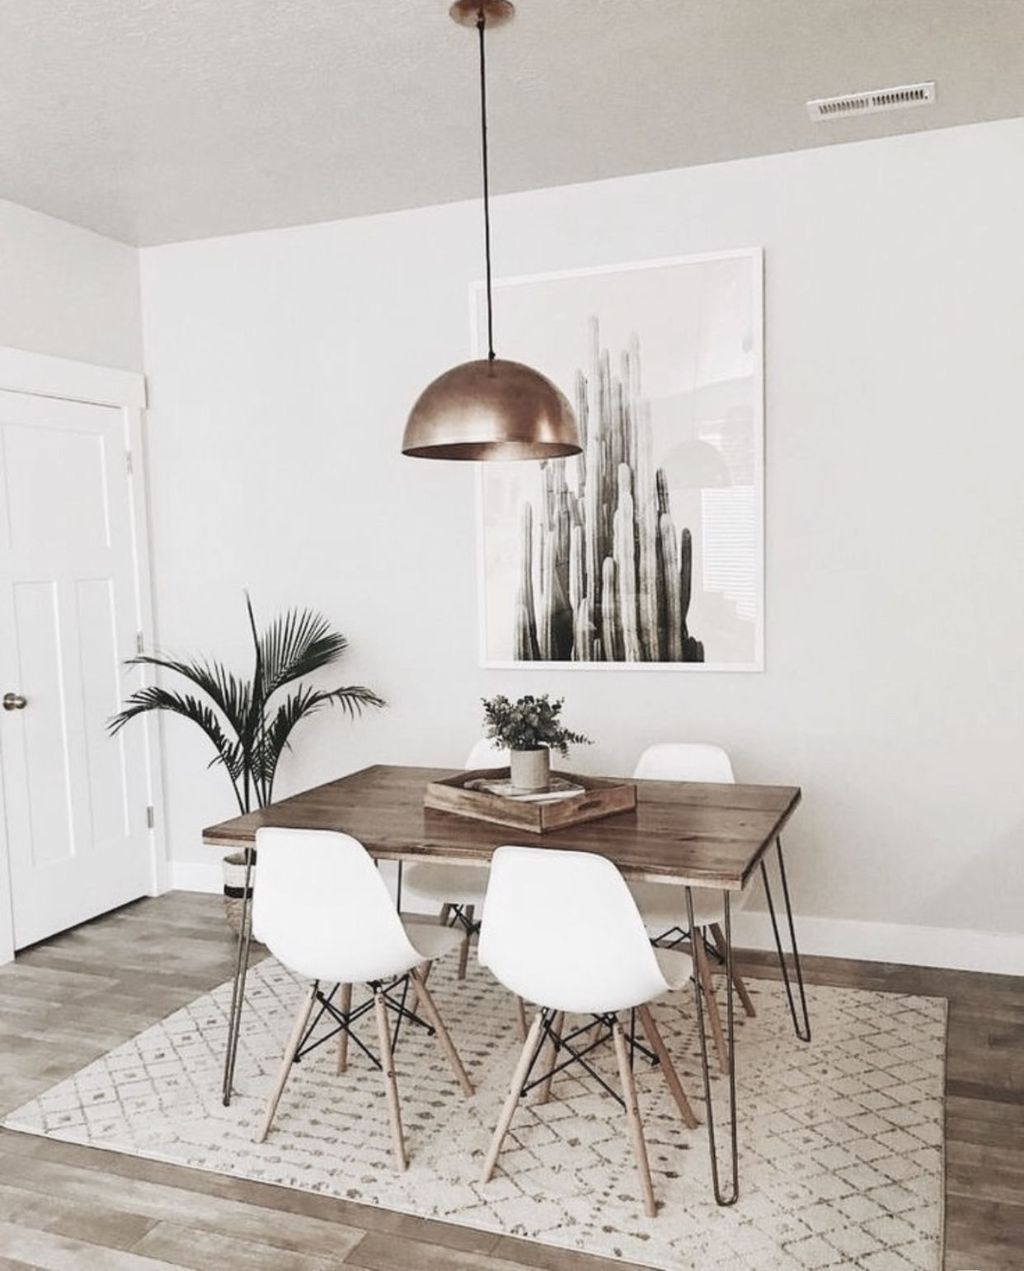 Awesome 48 Stunning Small Dining Room Design Ideas A Dining Room Is A Room For Consuming In 2020 Minimalist Dining Room Decor Dining Room Small Minimalist Dining Room